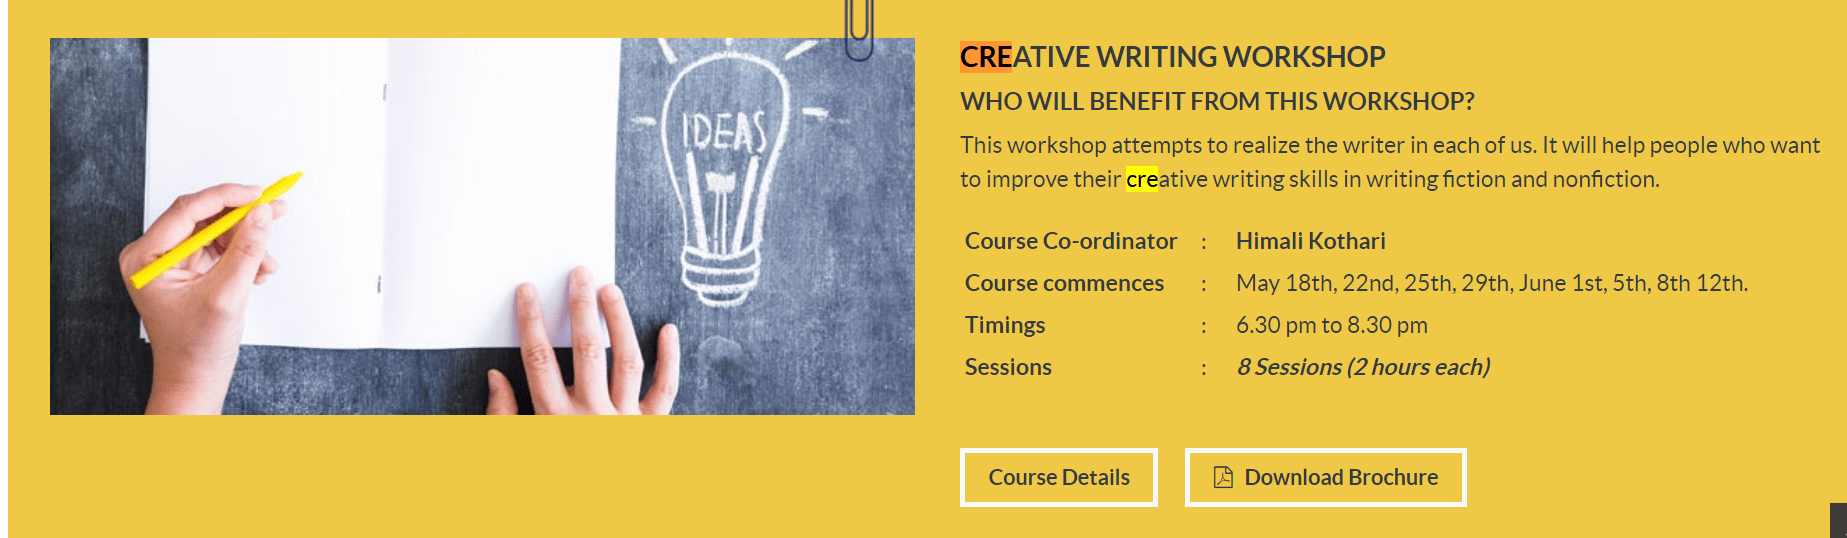 Xavier Institute of Communications Course Name: Creative Writing Workshop